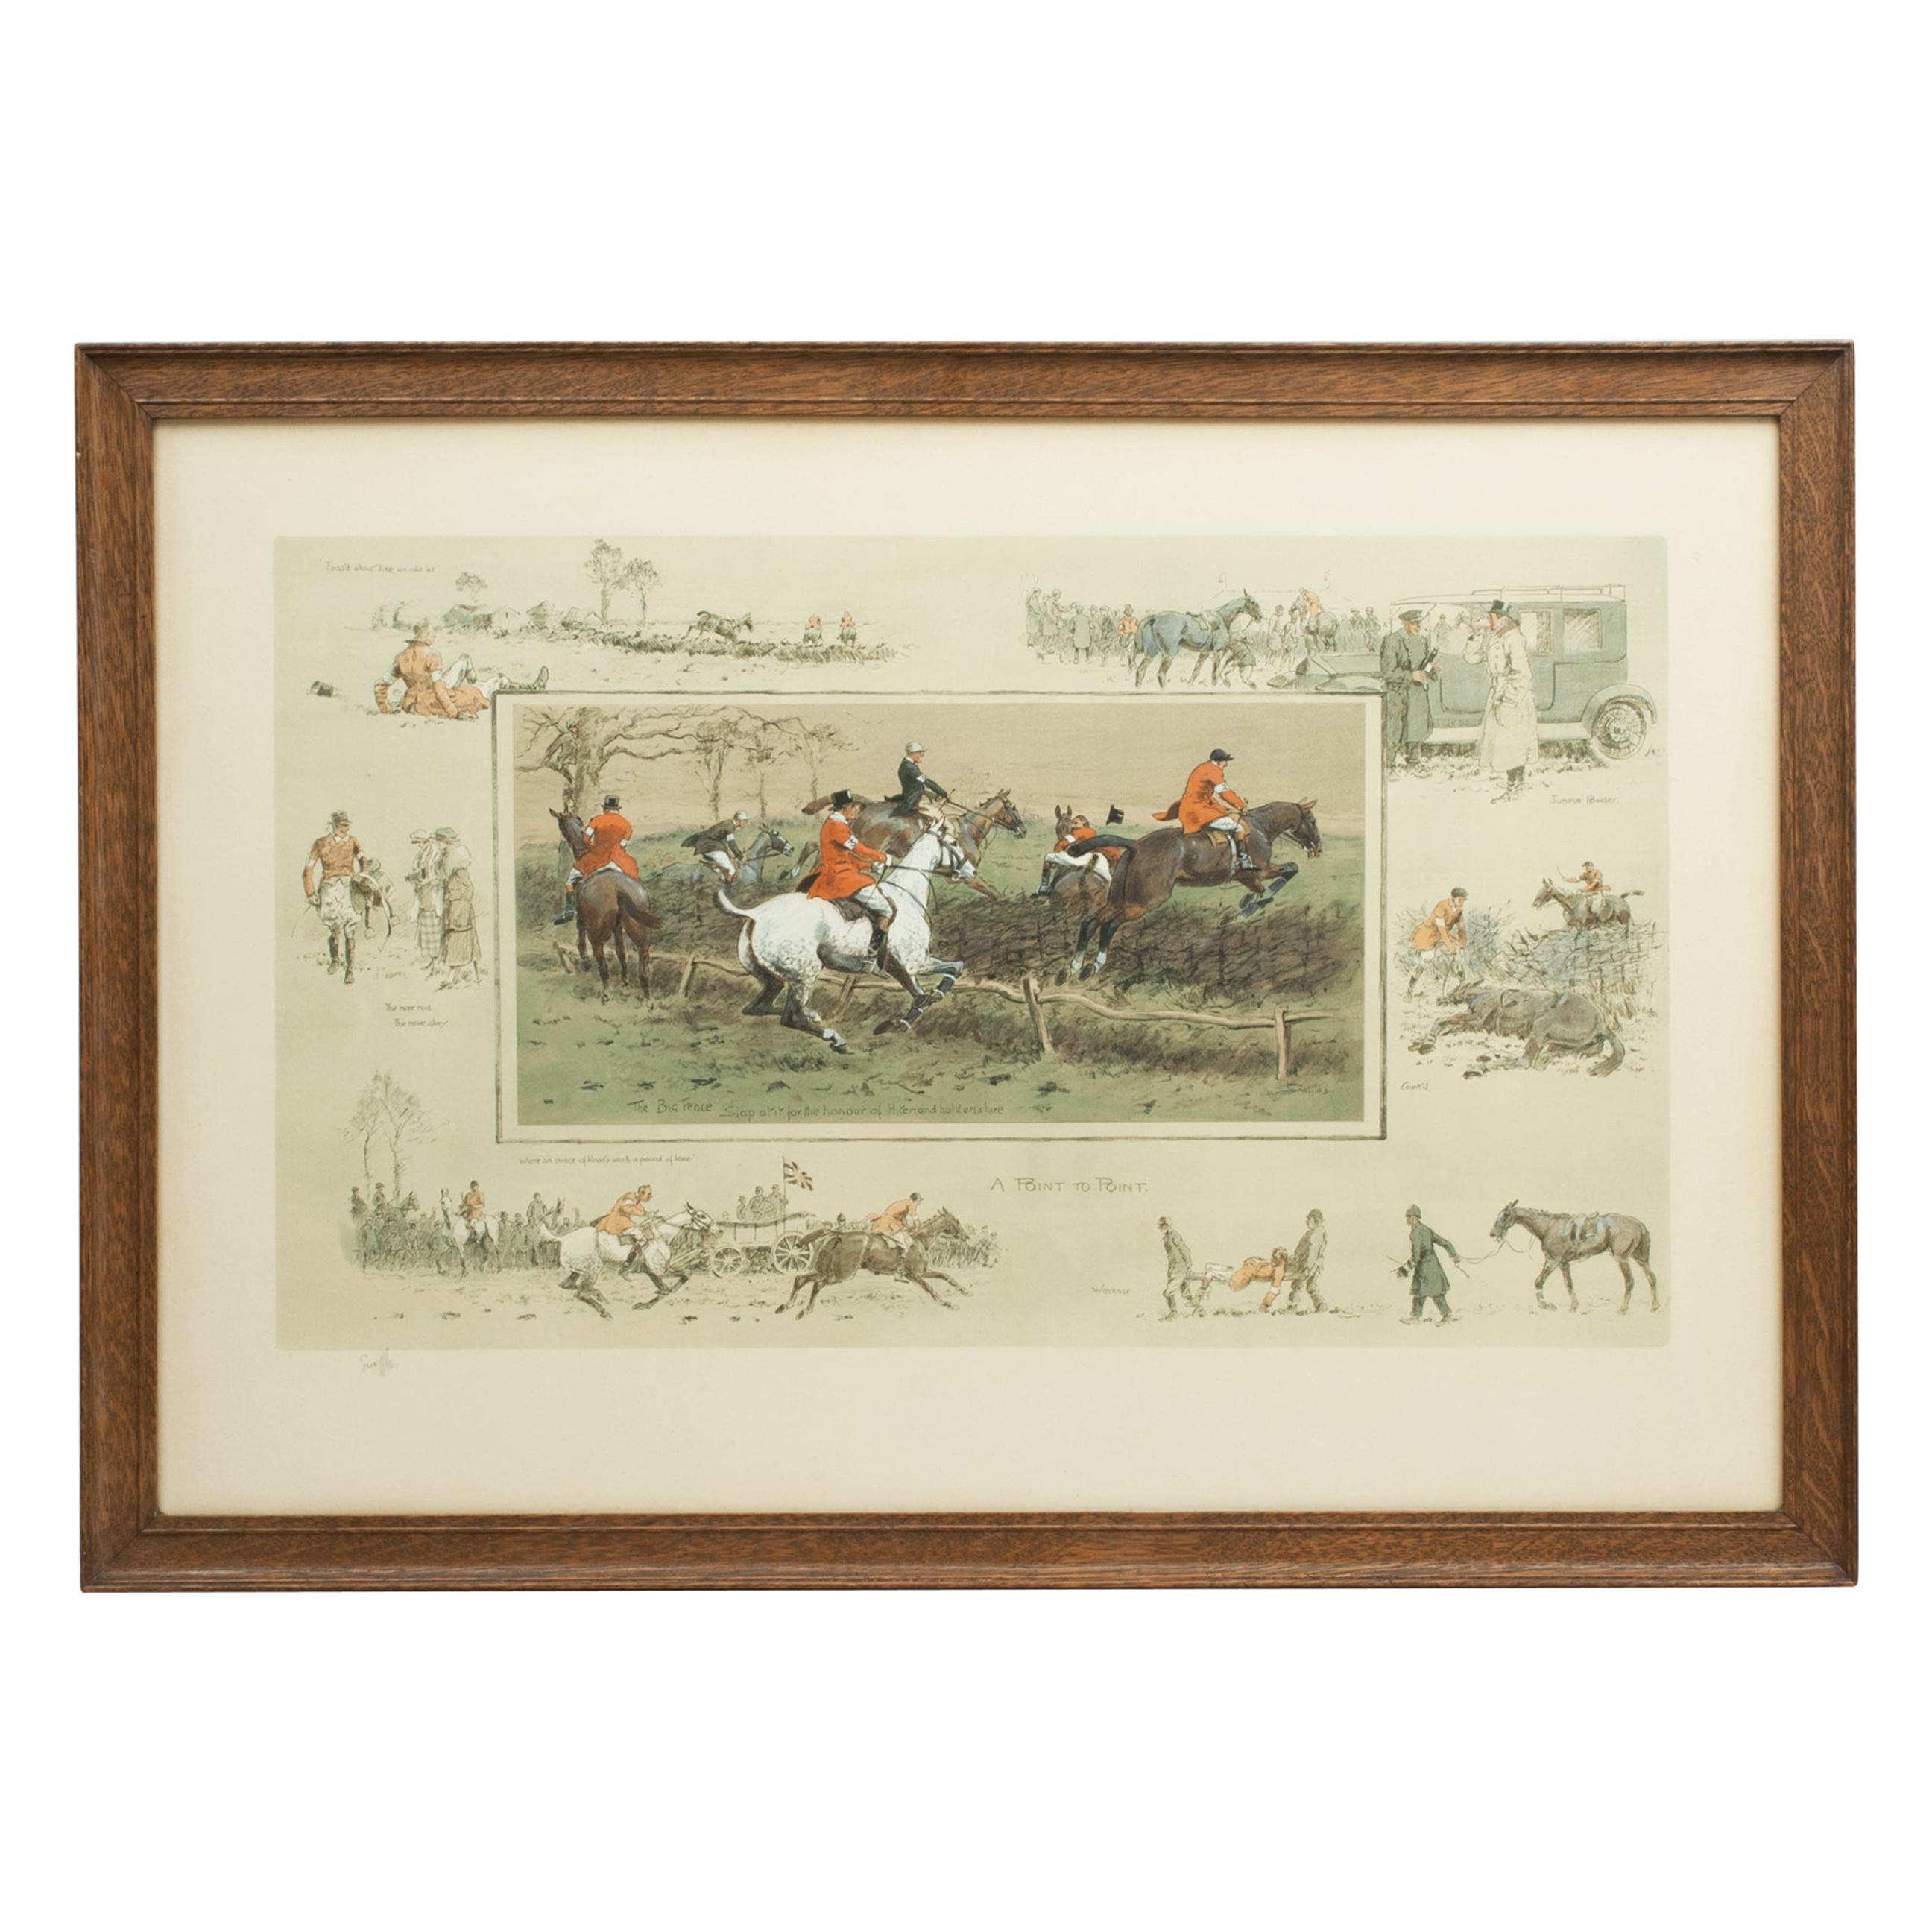 Snaffles Racing Print, A Point To Point, Signed in Pencil